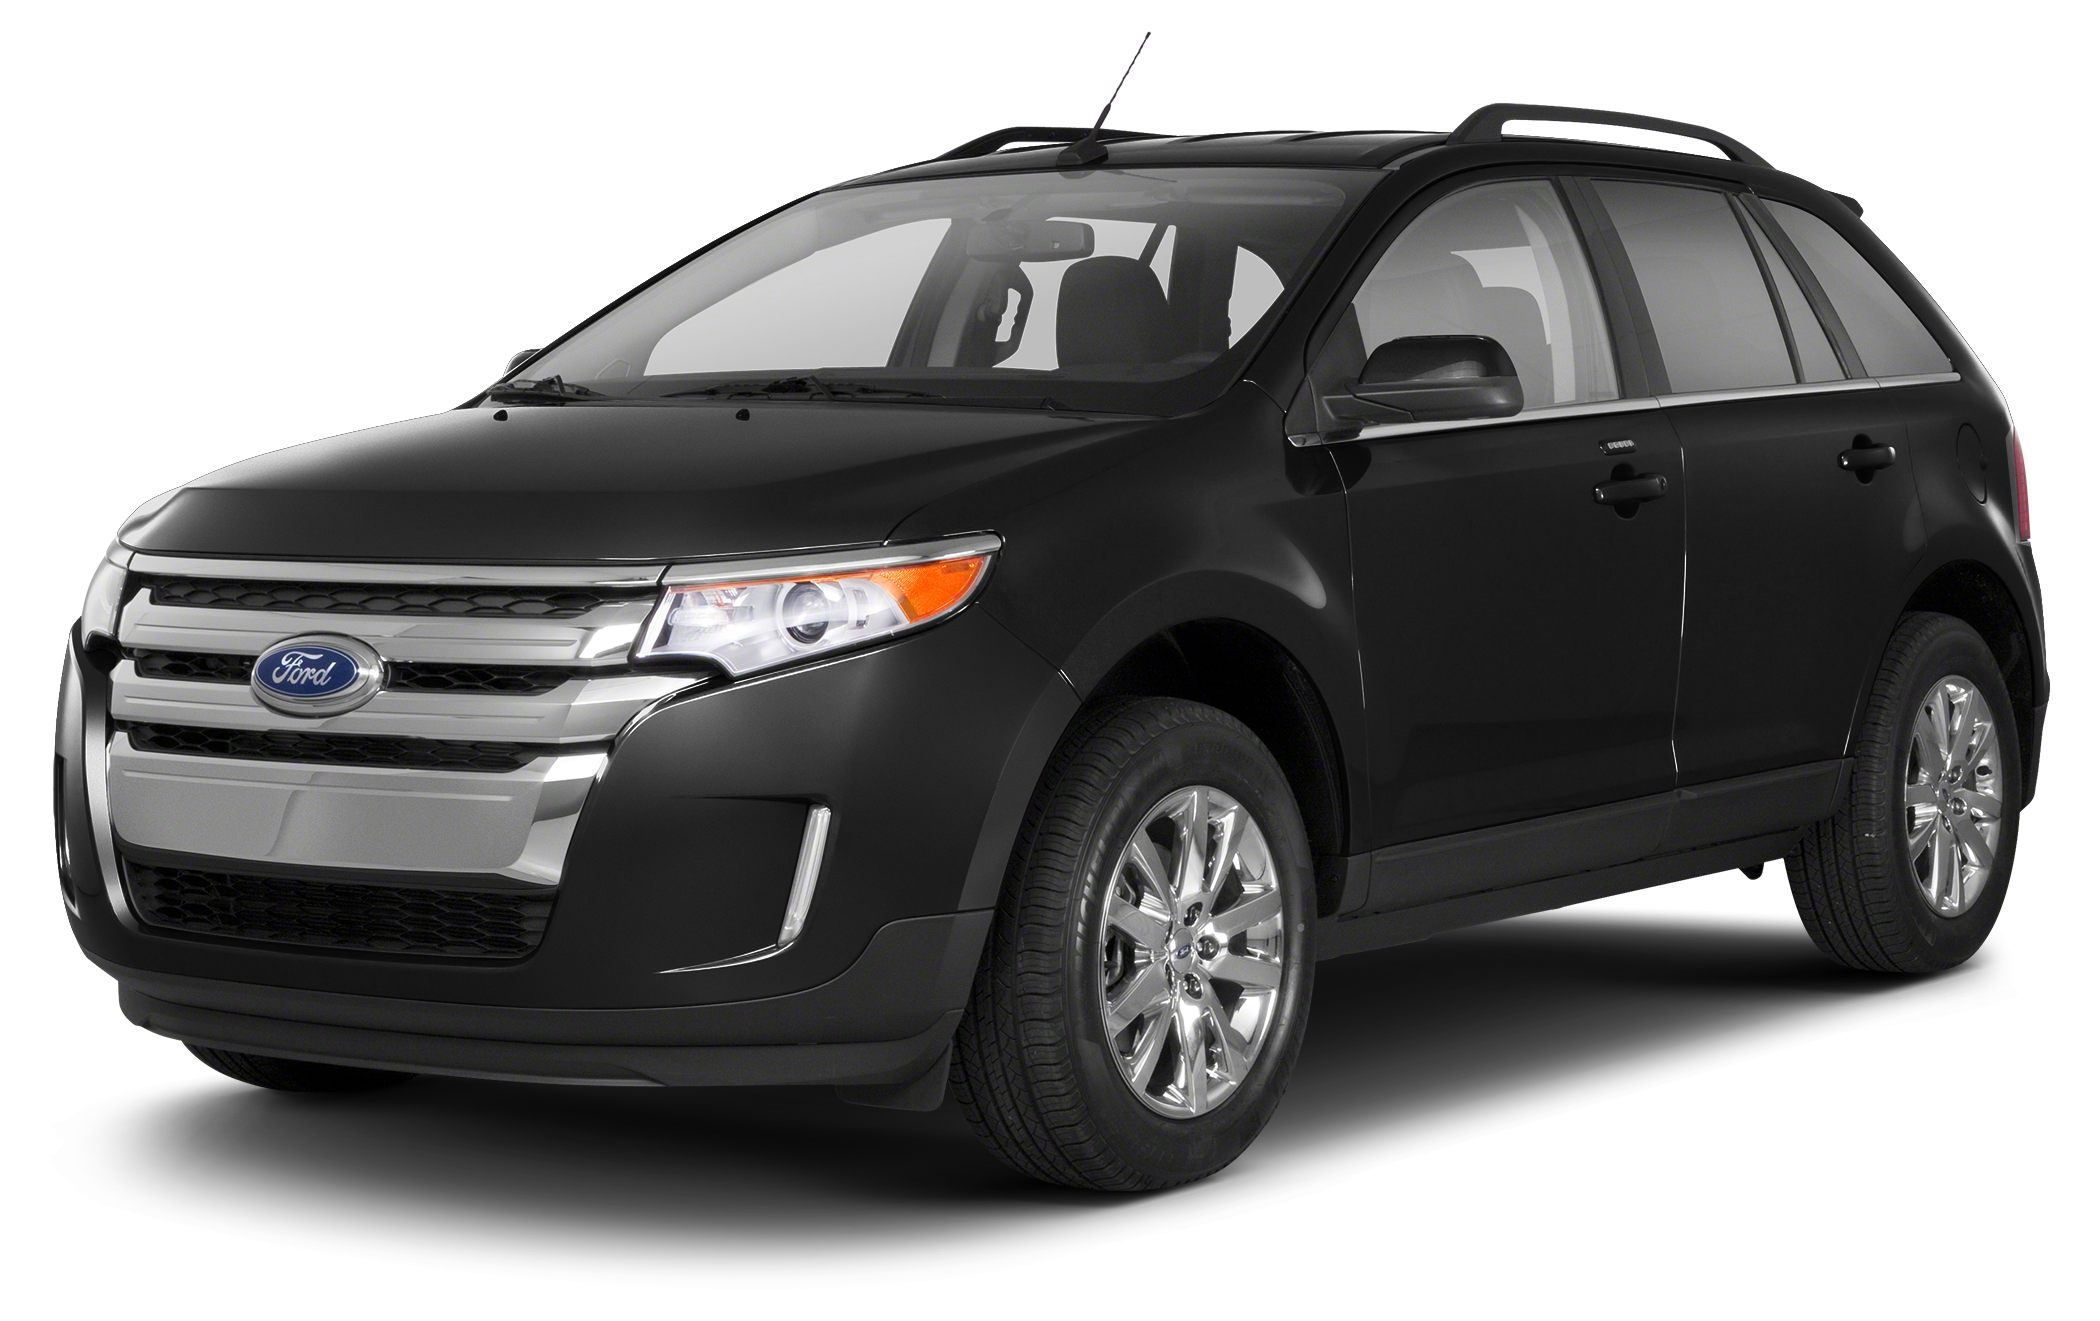 2013 Ford Edge Limited Ford Certified Excellent Condition PRICED TO MOVE 3700 below NADA Retai